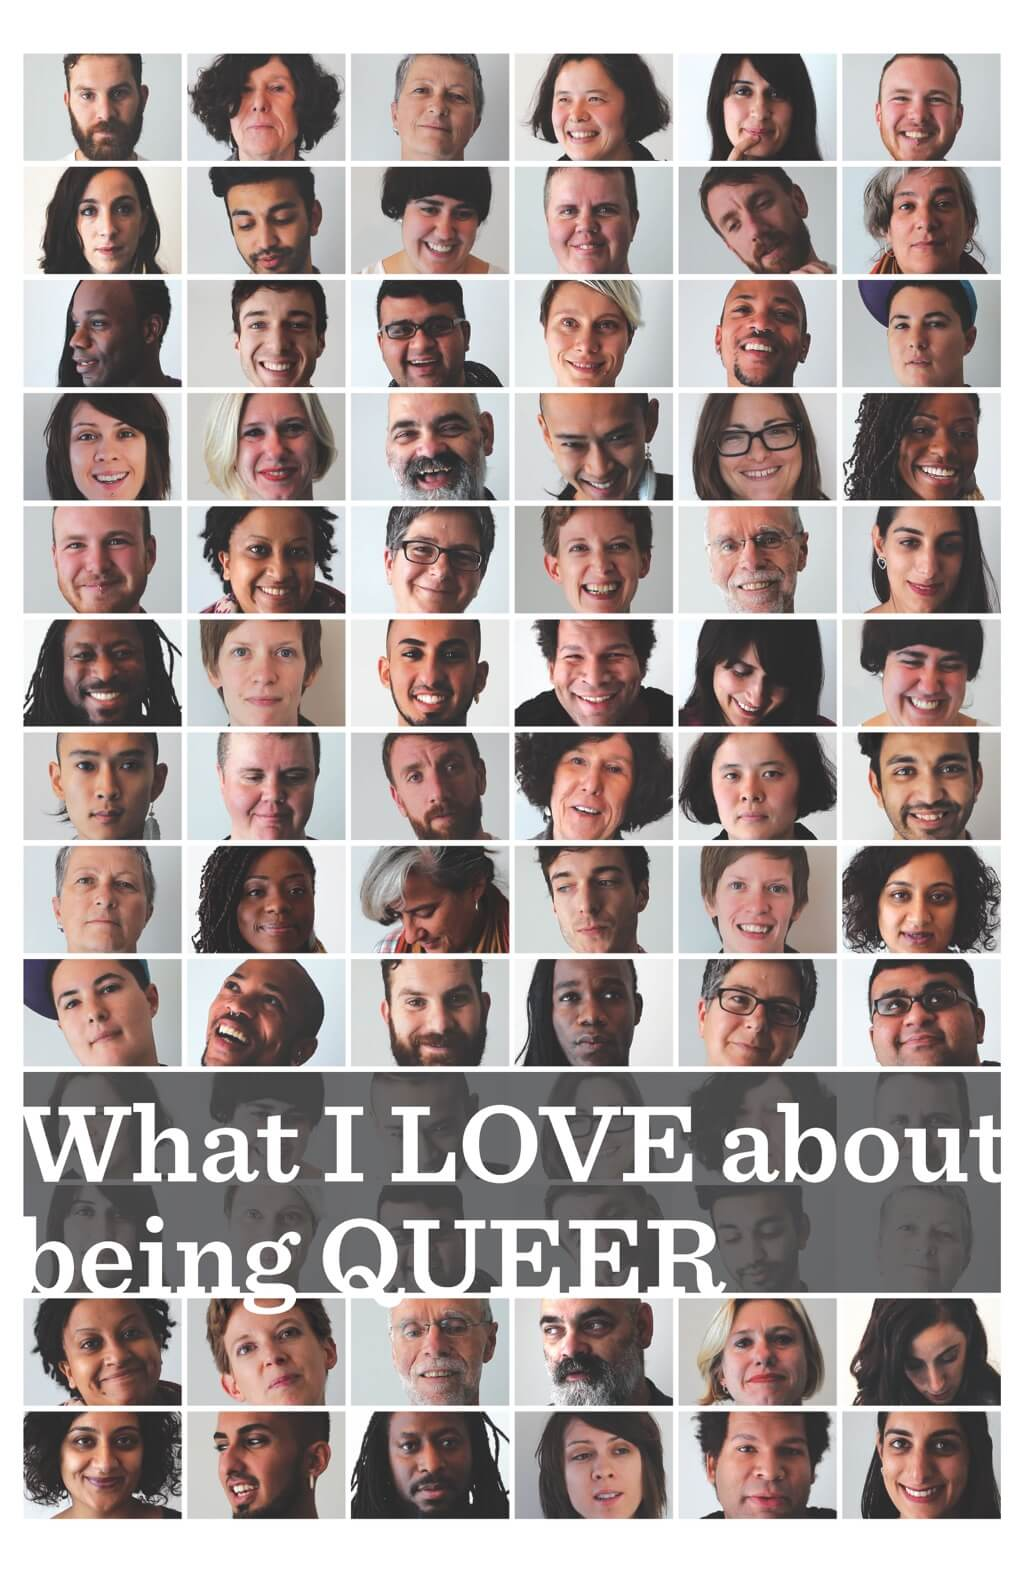 A photo mosaic of smiling faces, crossed by a grey banner with bold white text, 'What I LOVE about being QUEER.'